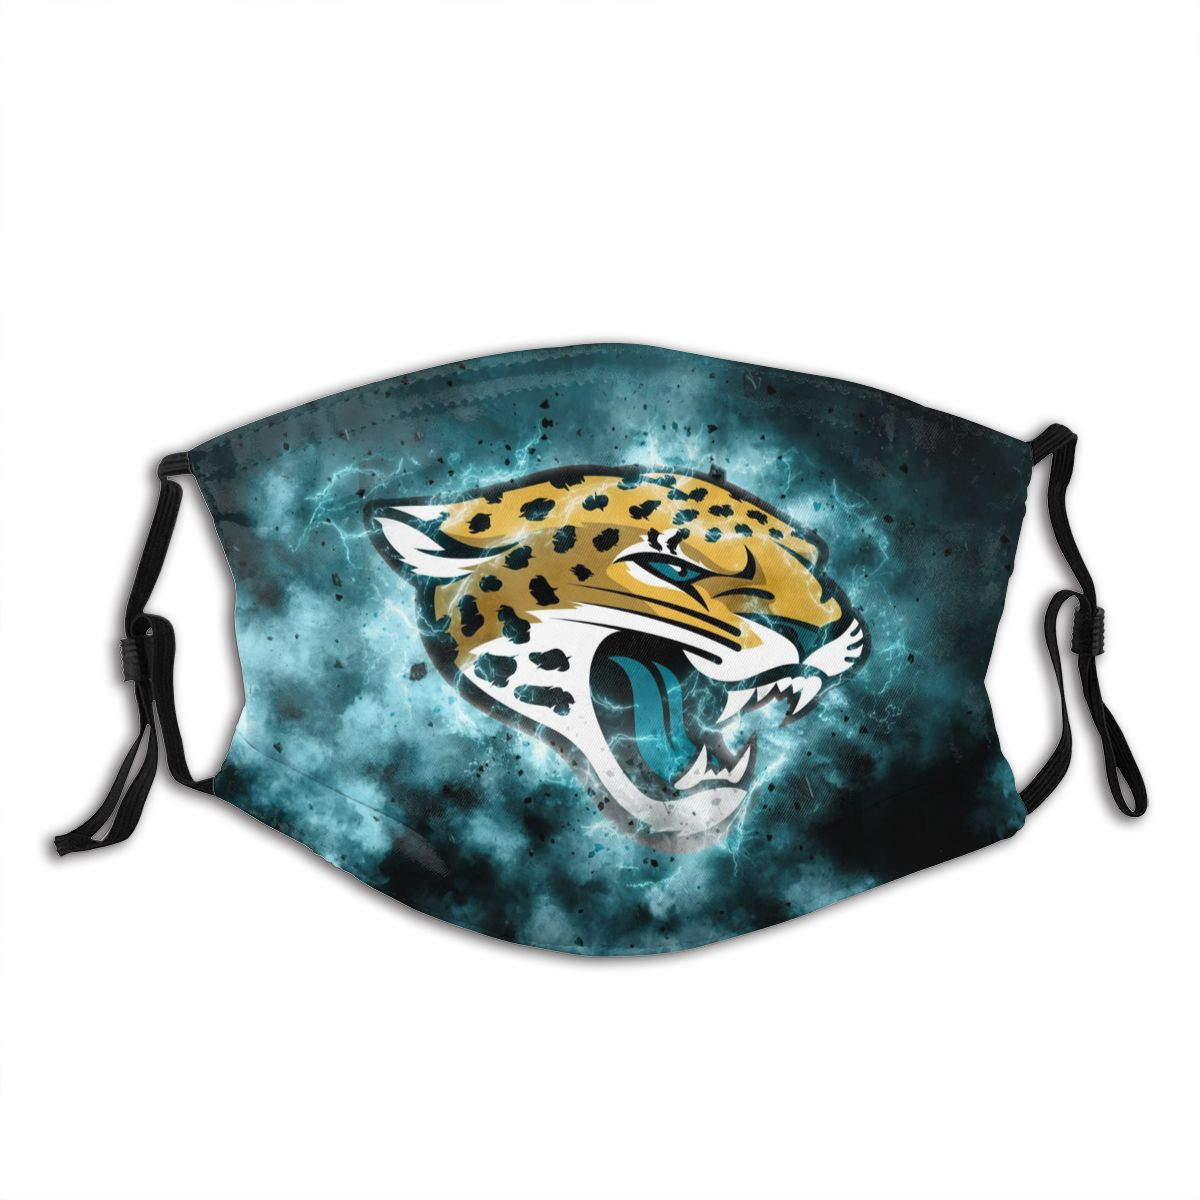 Jaguars Illustration Art Adult Cloth Face Covering With Filter